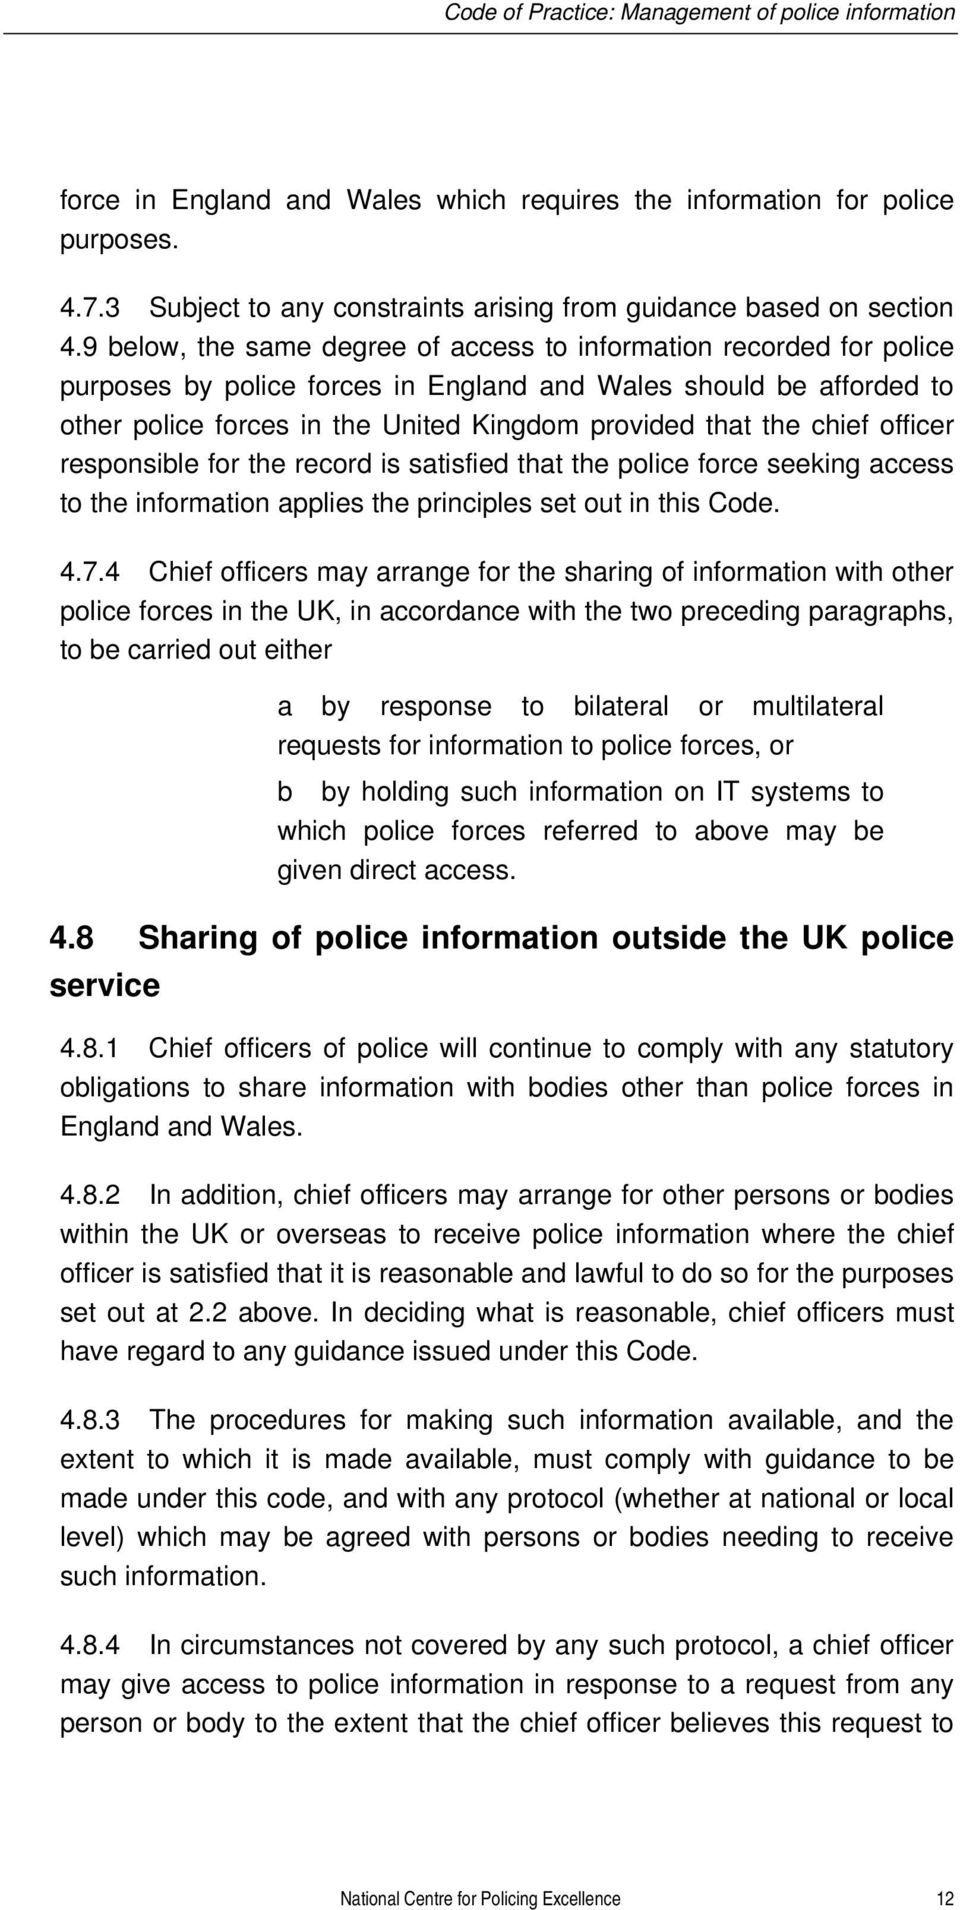 CODE OF PRACTICE ON THE MANAGEMENT OF POLICE INFORMATION - PDF